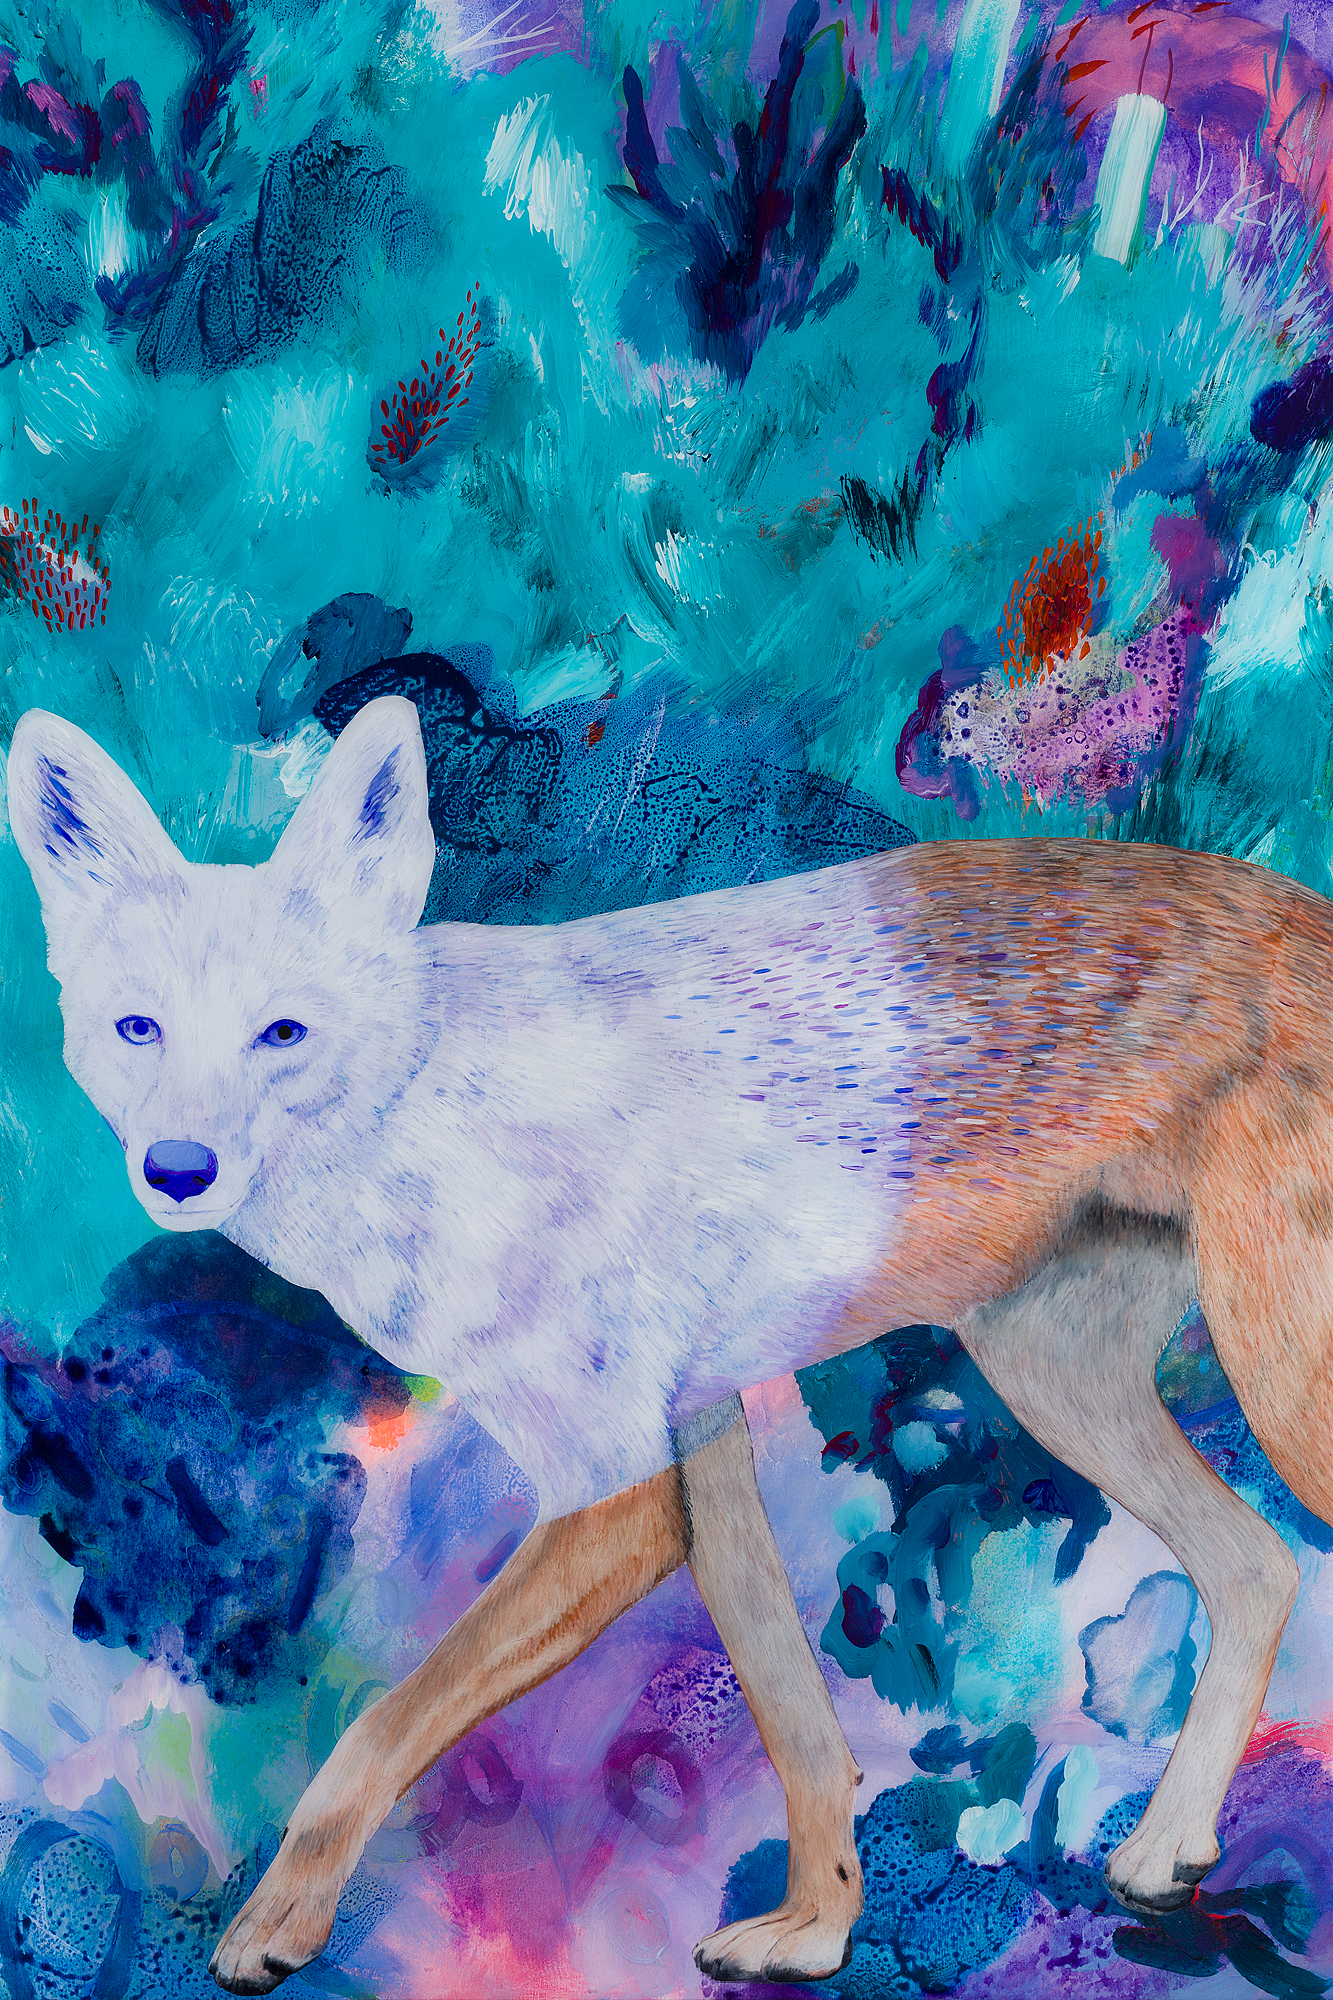 Running Coyote (II) , 2018. Coloured pencil, acrylic, and resin on wood panel, 36x24 inches